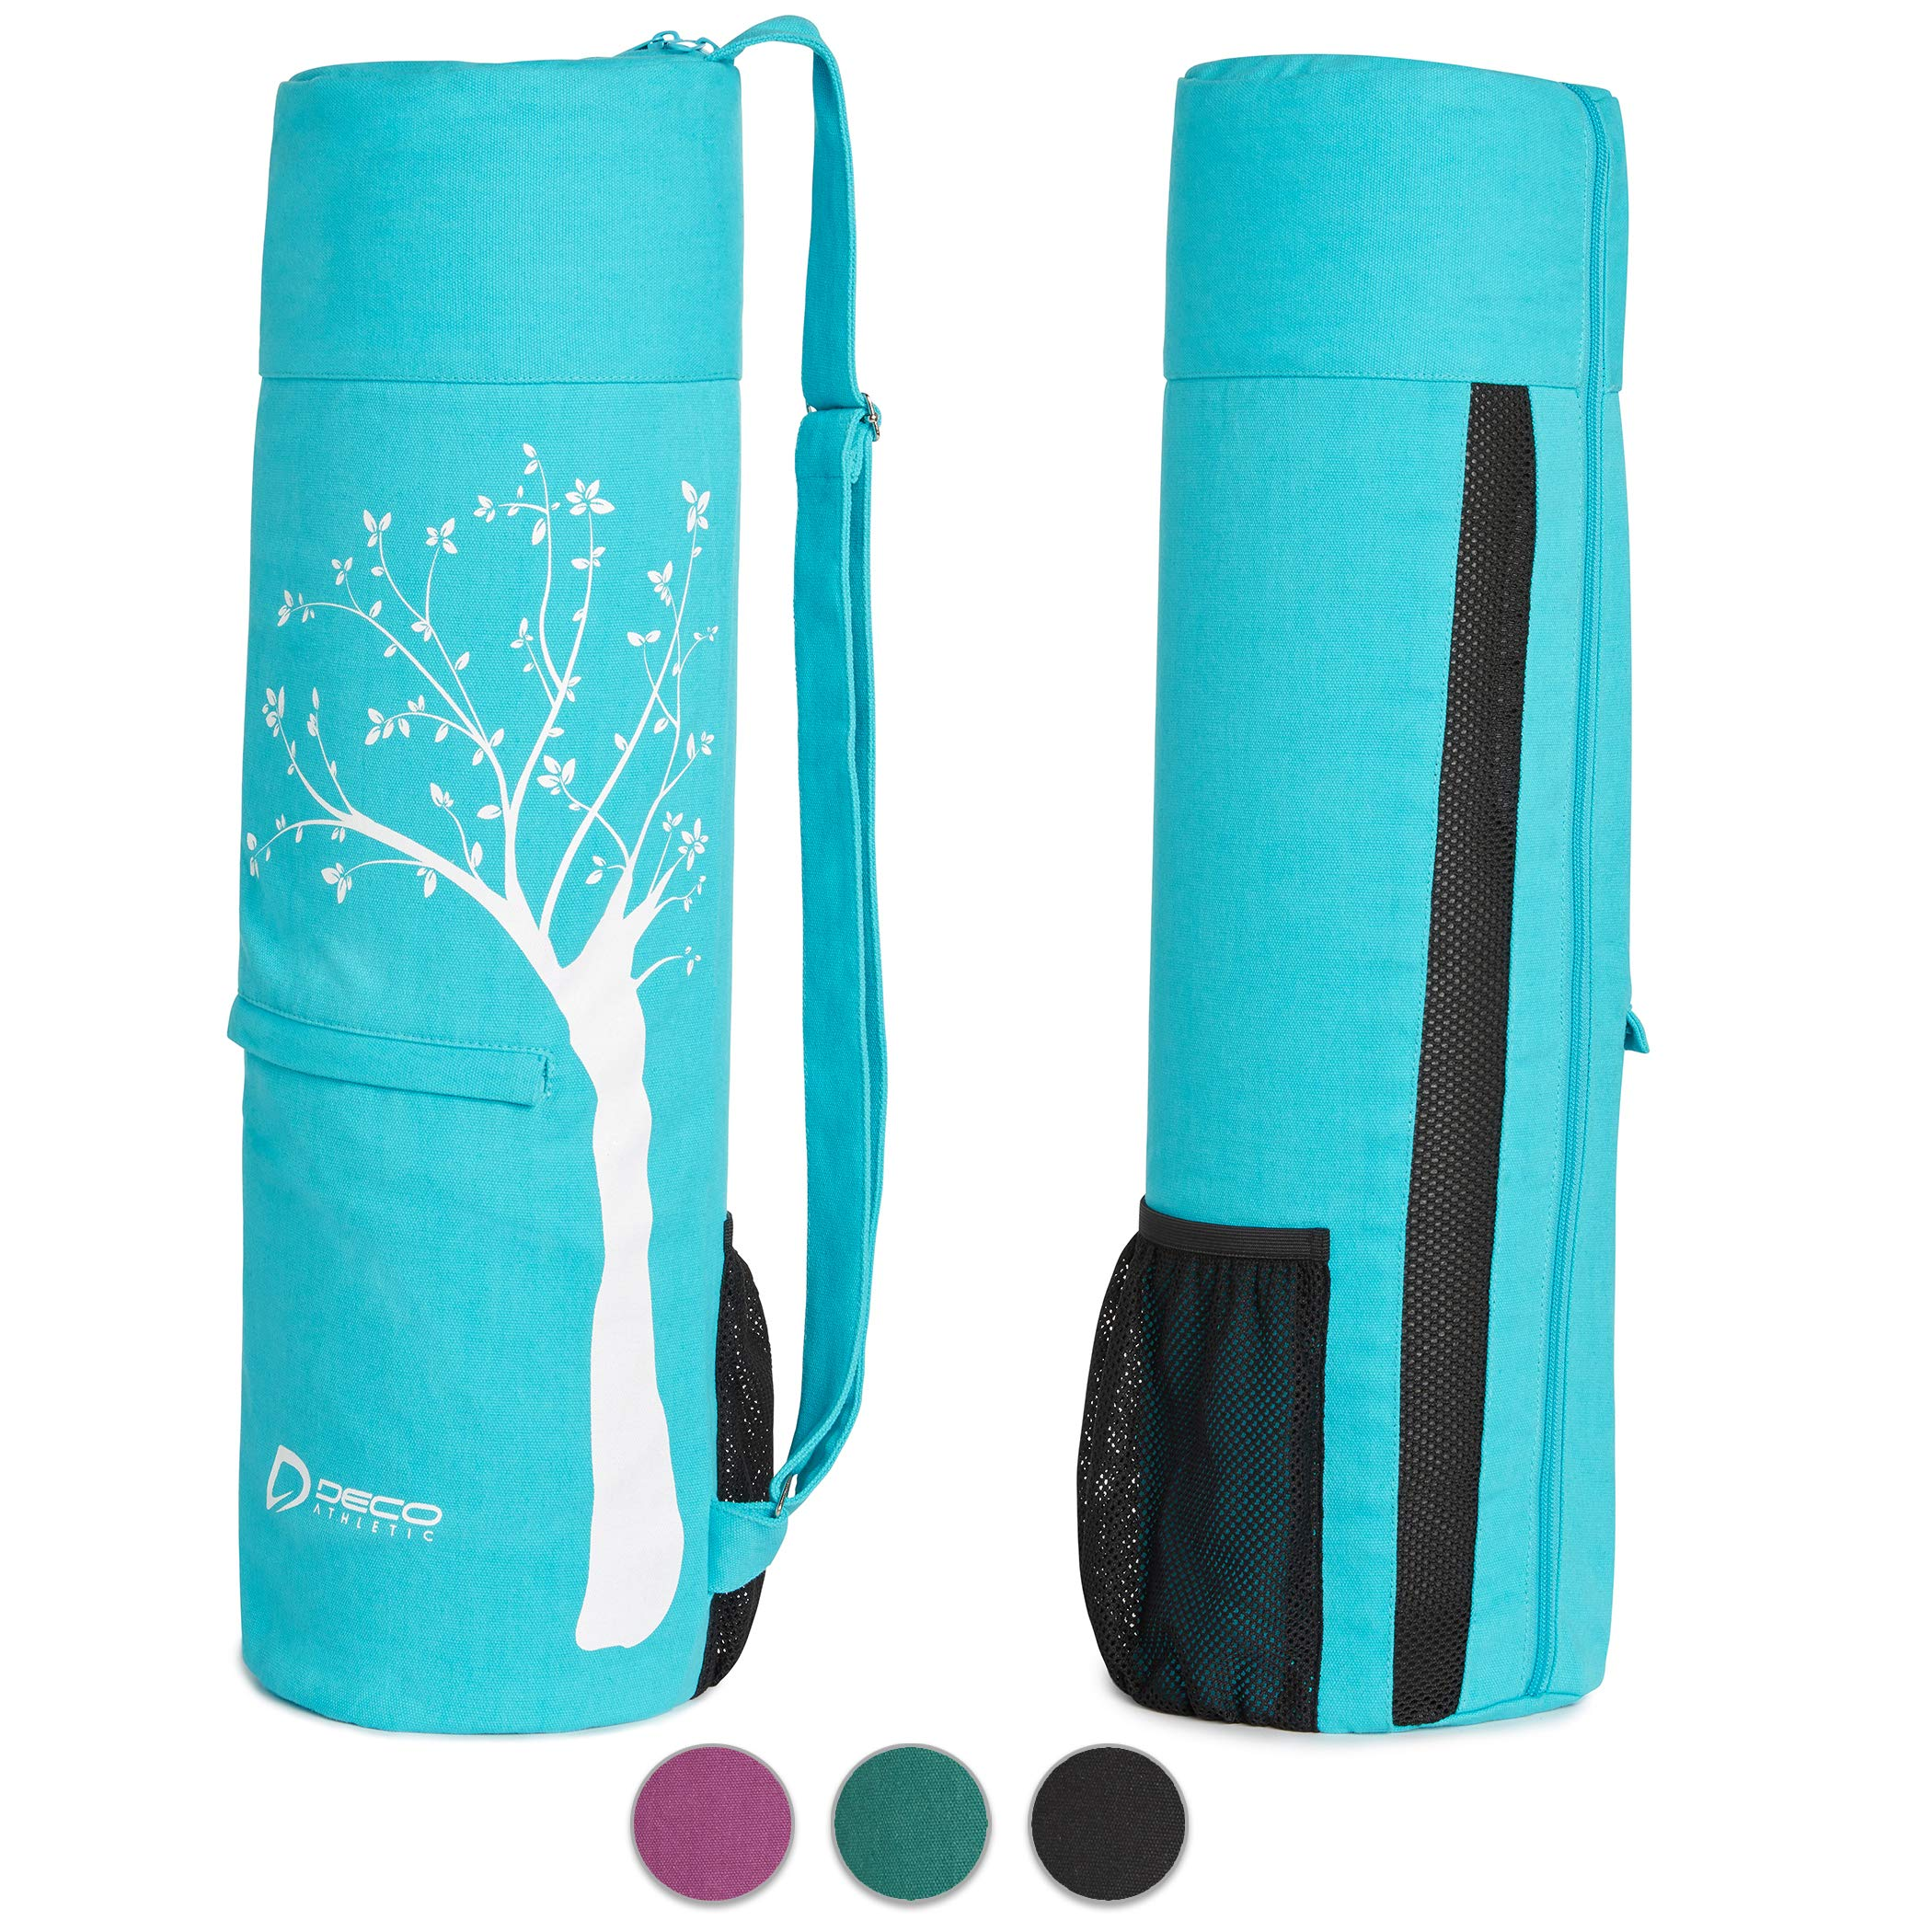 Deco Athletic Teal Yoga Mat Bag. Choose Your Color - fits up to 25in mat and Blanket, 2 Large Pockets, Room for Water Bottle & Towel. One Tree Planted for Every Bag Purchased!